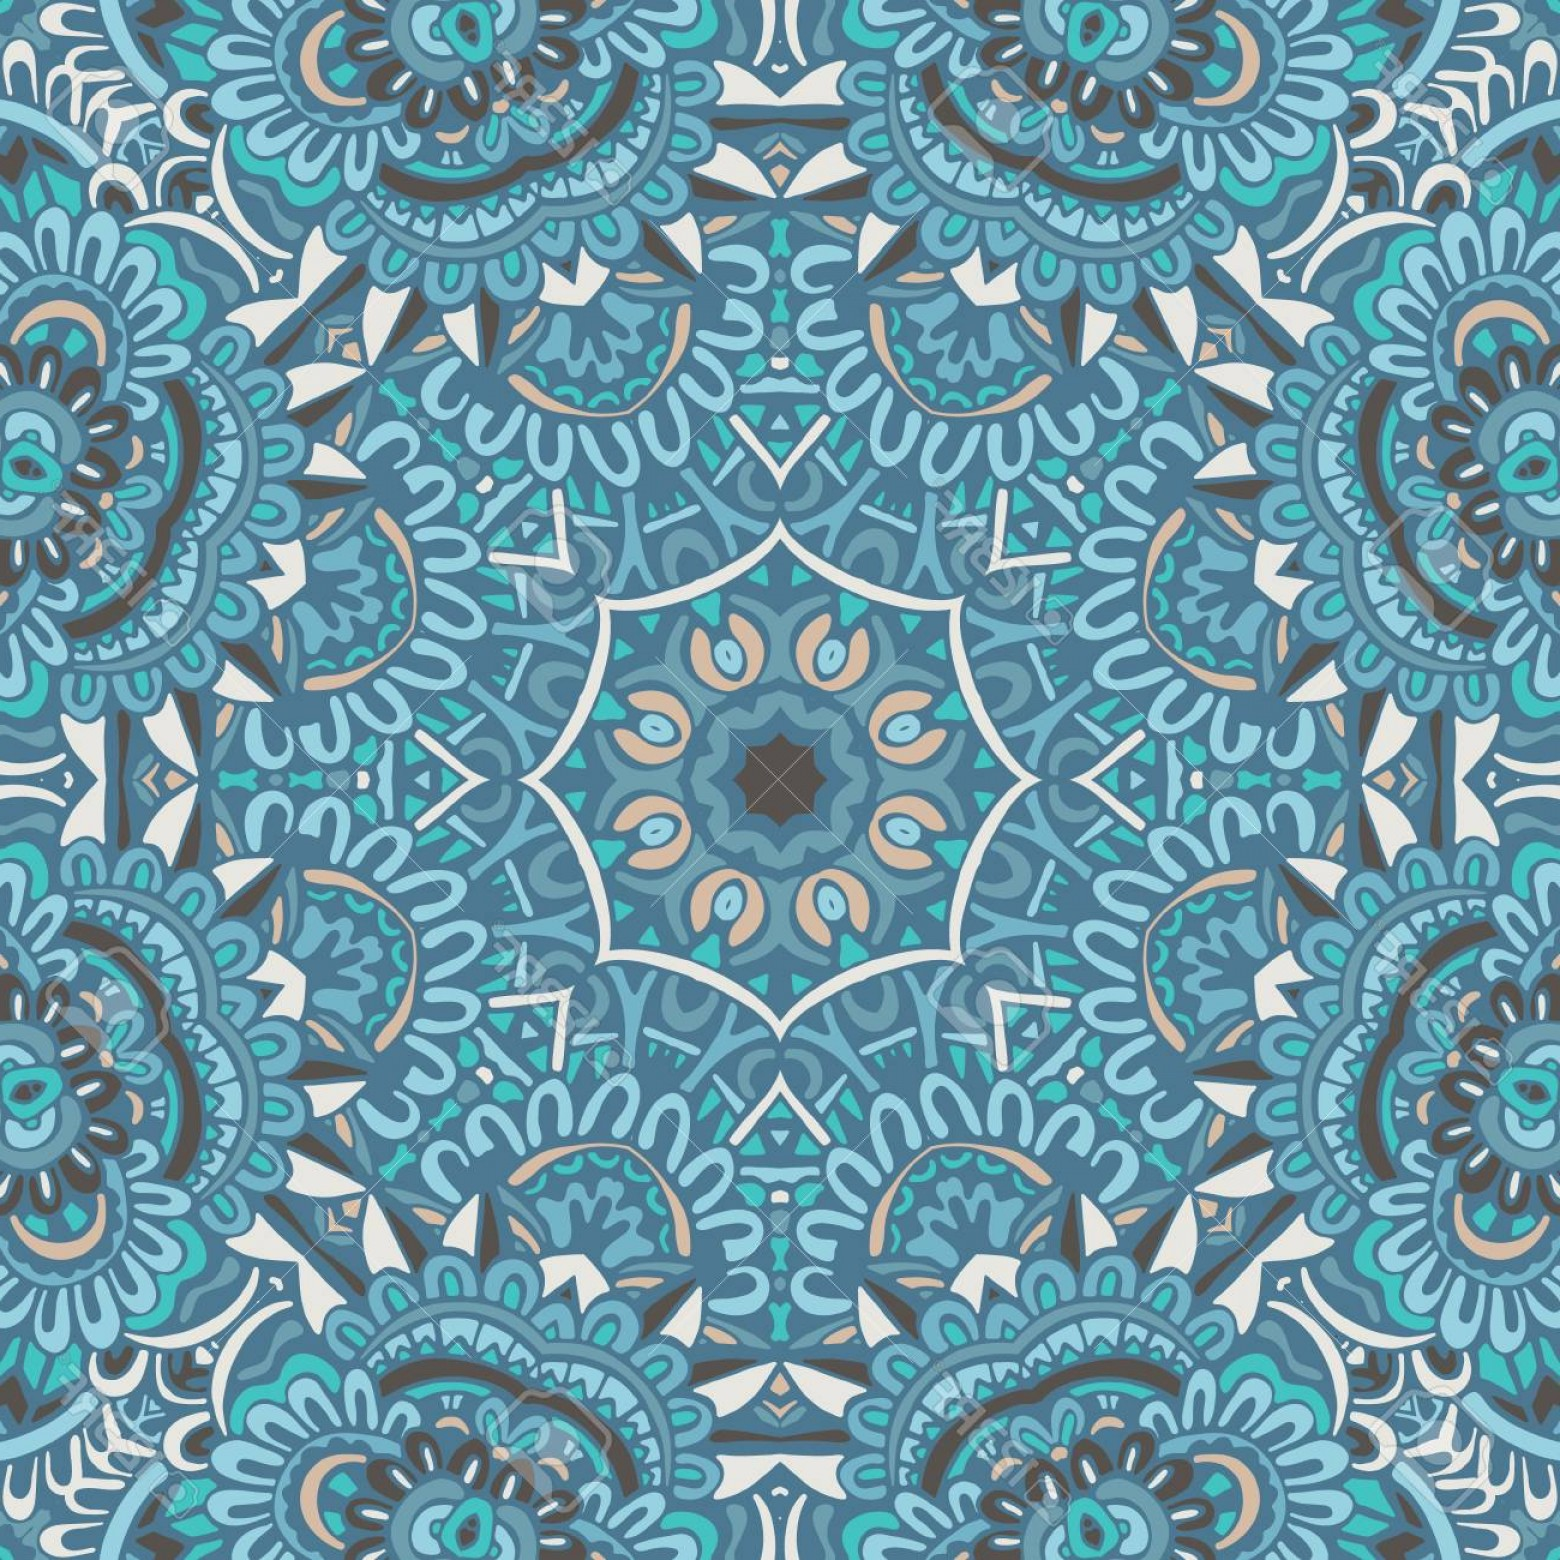 Aqua Victorian Medallions Vectors: Photostock Vector Abstract Medallion Seamless Pattern Flourish Winter Mandala Background